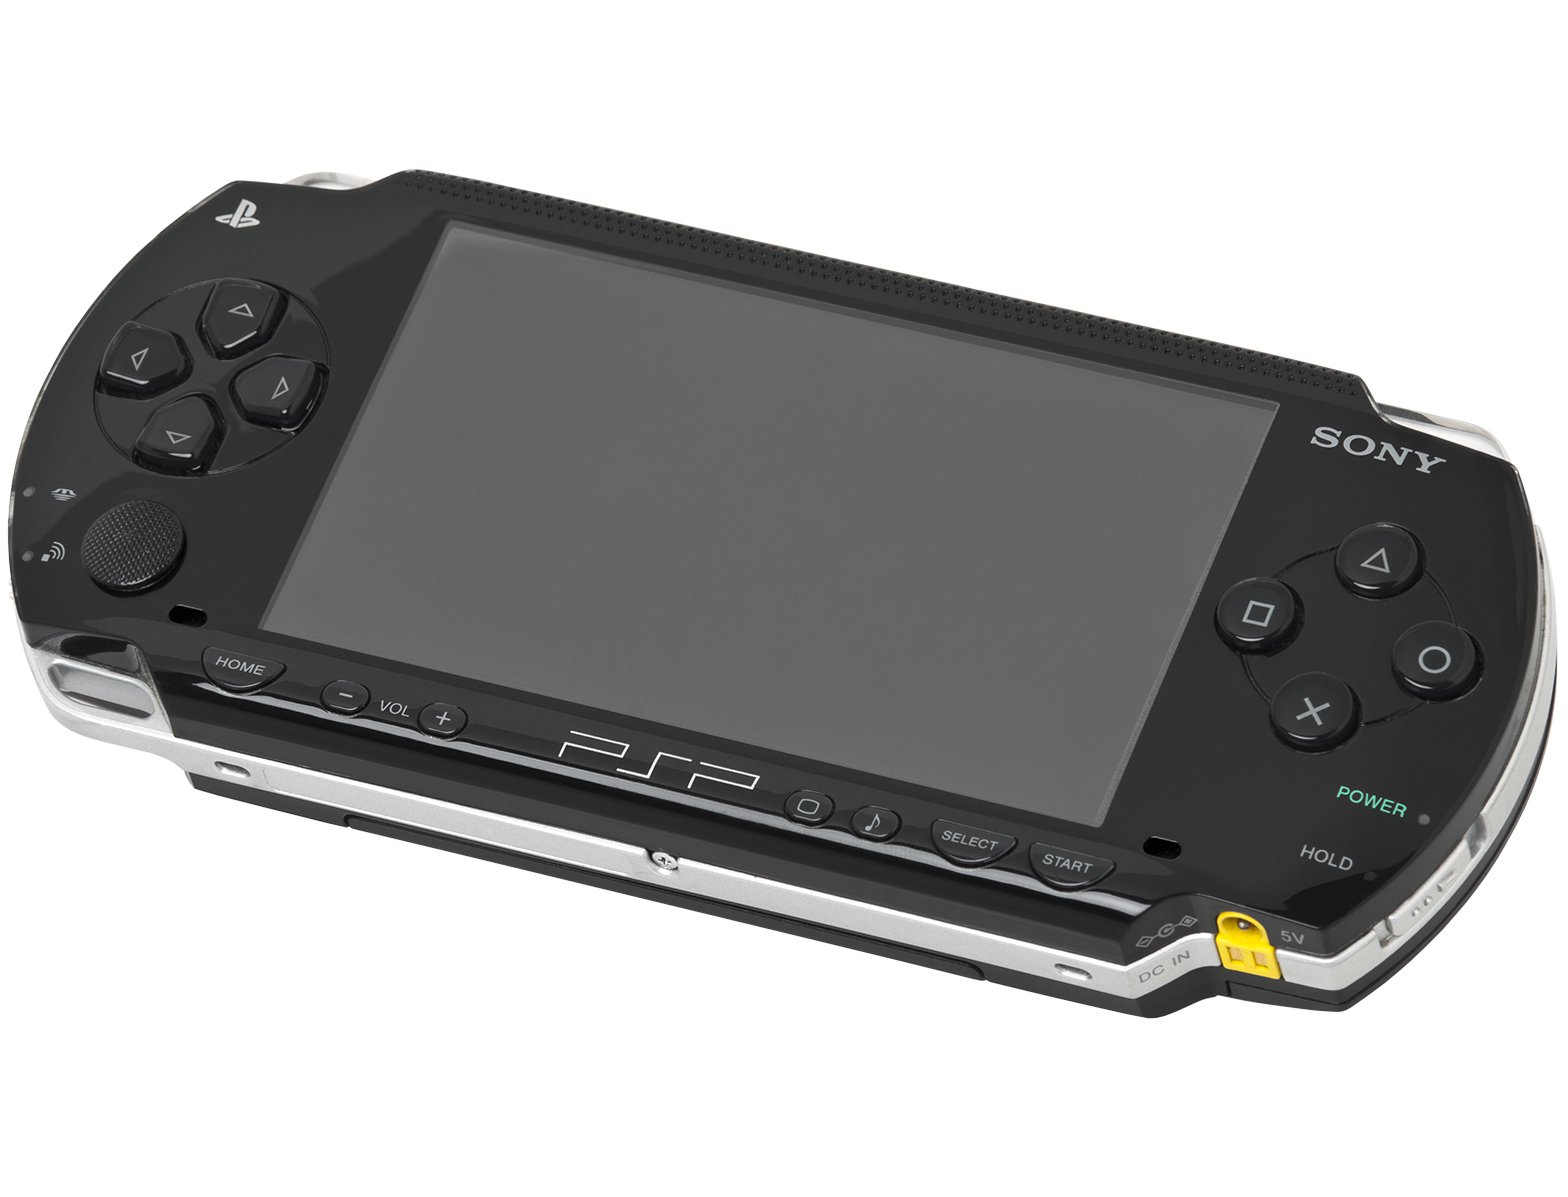 PlayStation Portable - PSP